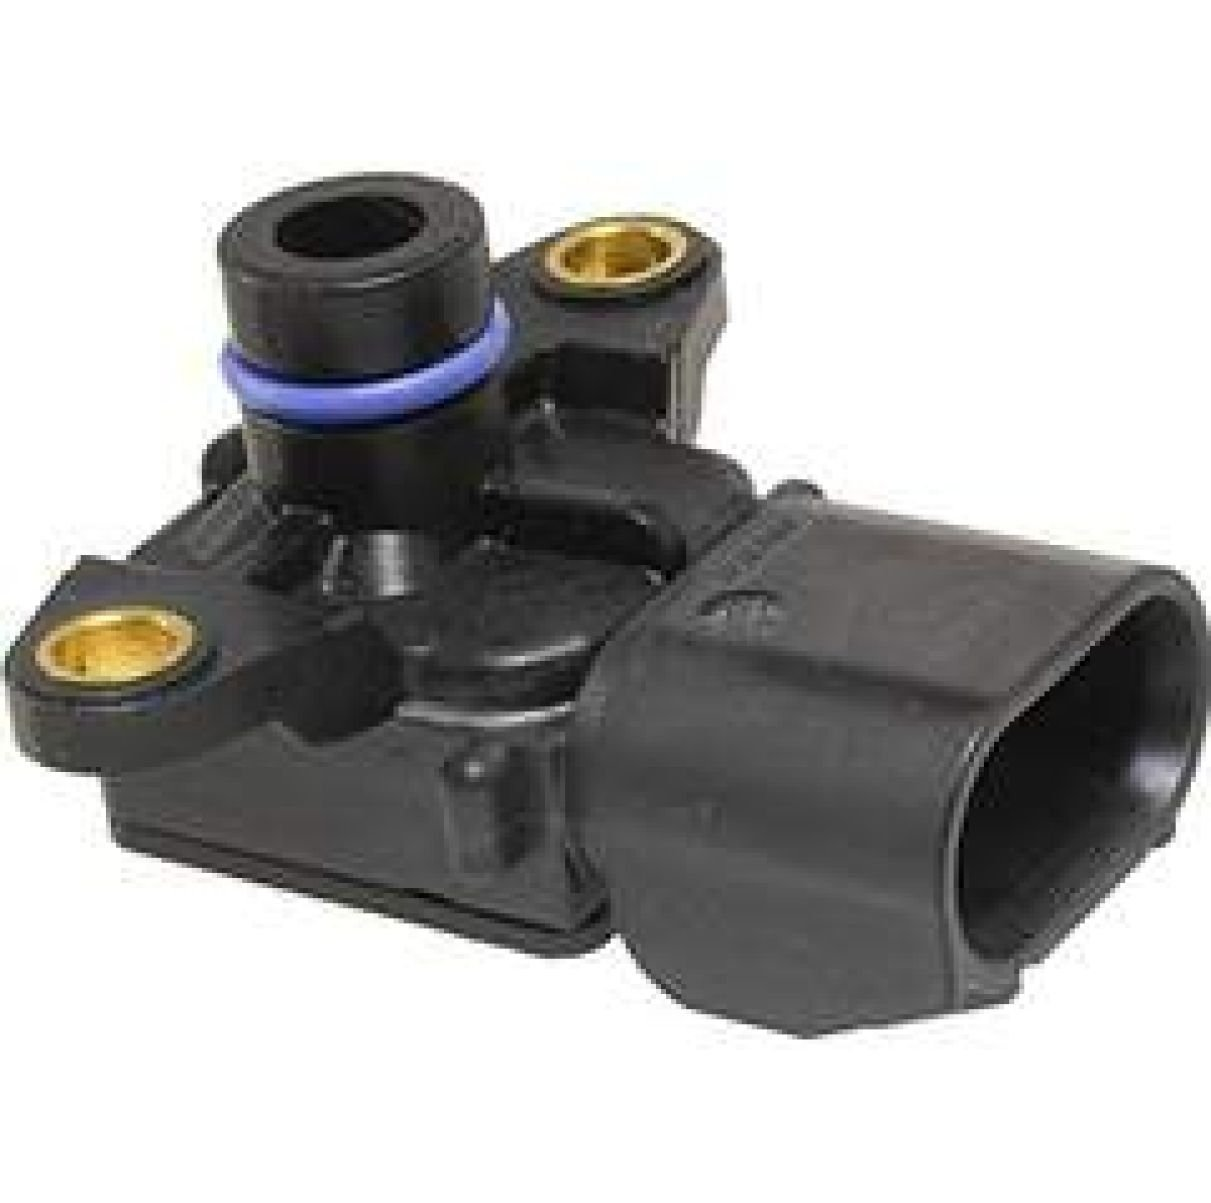 56041018AD,56028562AB; 56041018AC Fully Compatible MAP Sensor Manifold Absolute Pressure for Mopar, Dodge Jeep Chrysler Caravan Dakota 217,AS217 Global Discount Sales